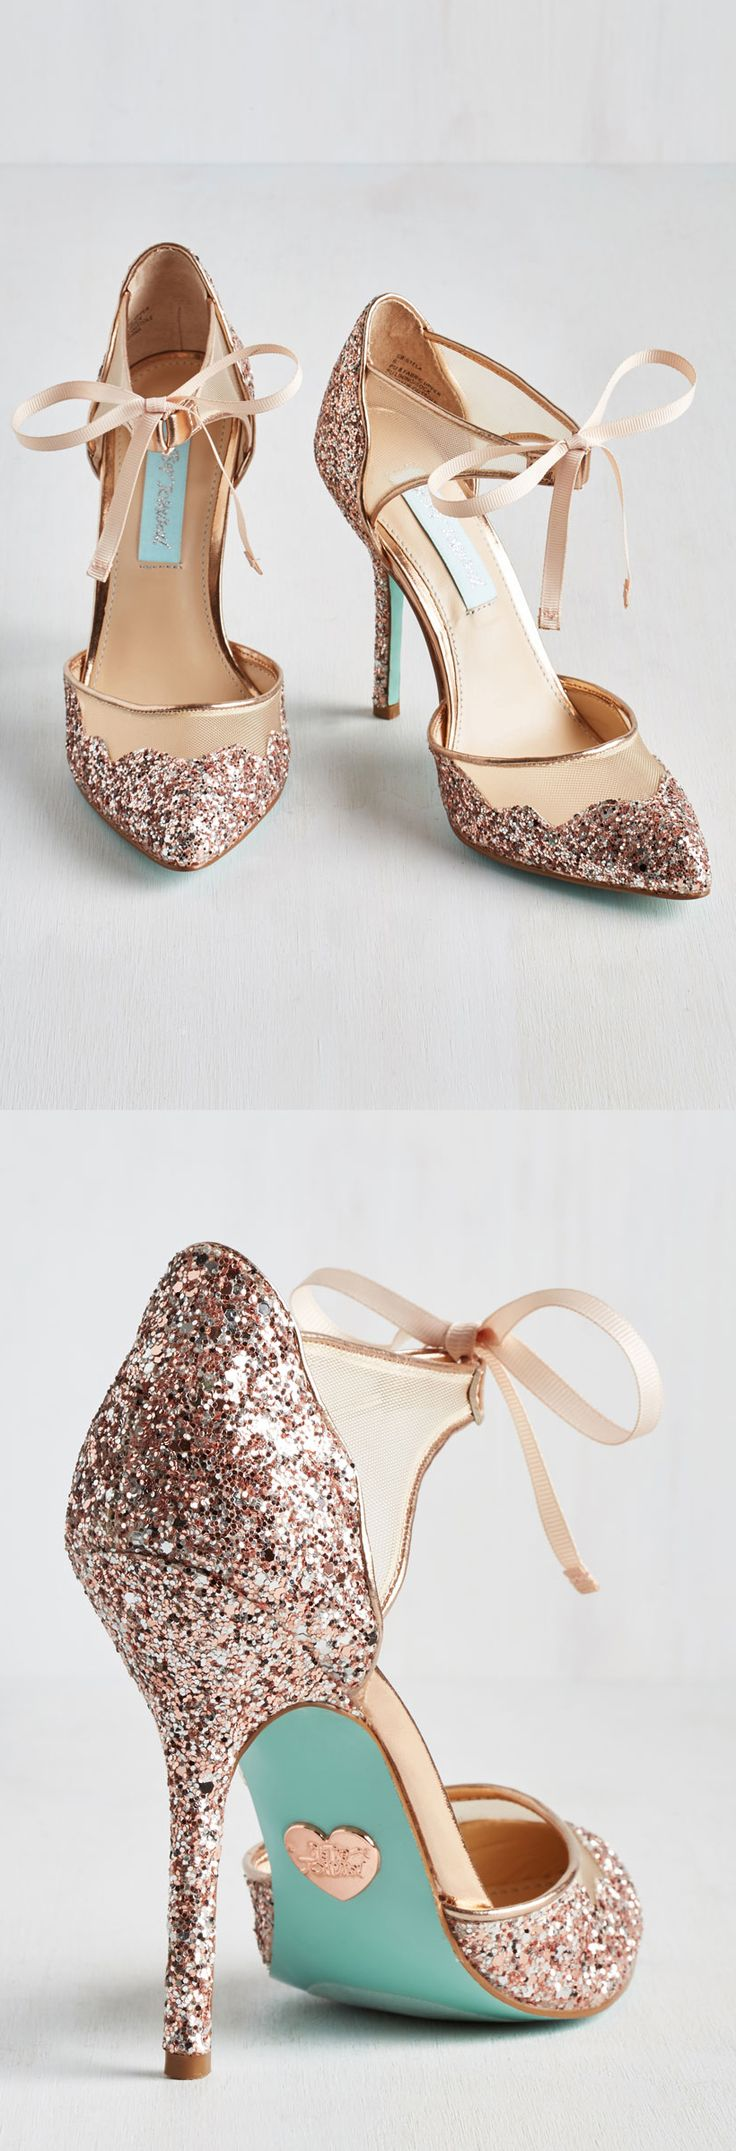 Betsey Johnson Rose Gold Glitter Heels